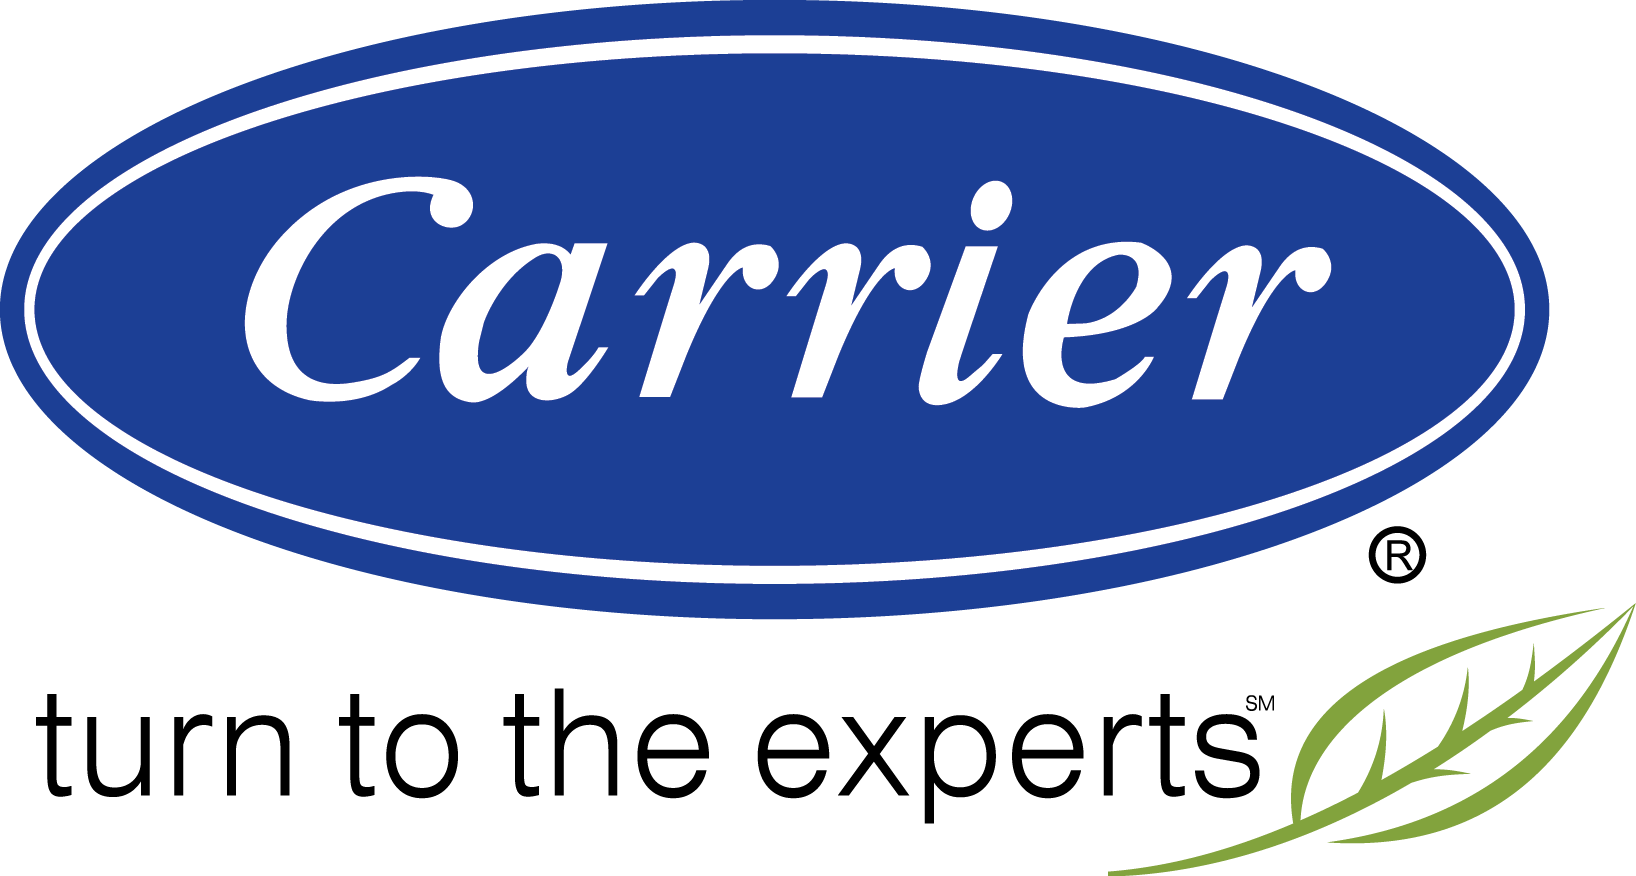 carrier-logo-full